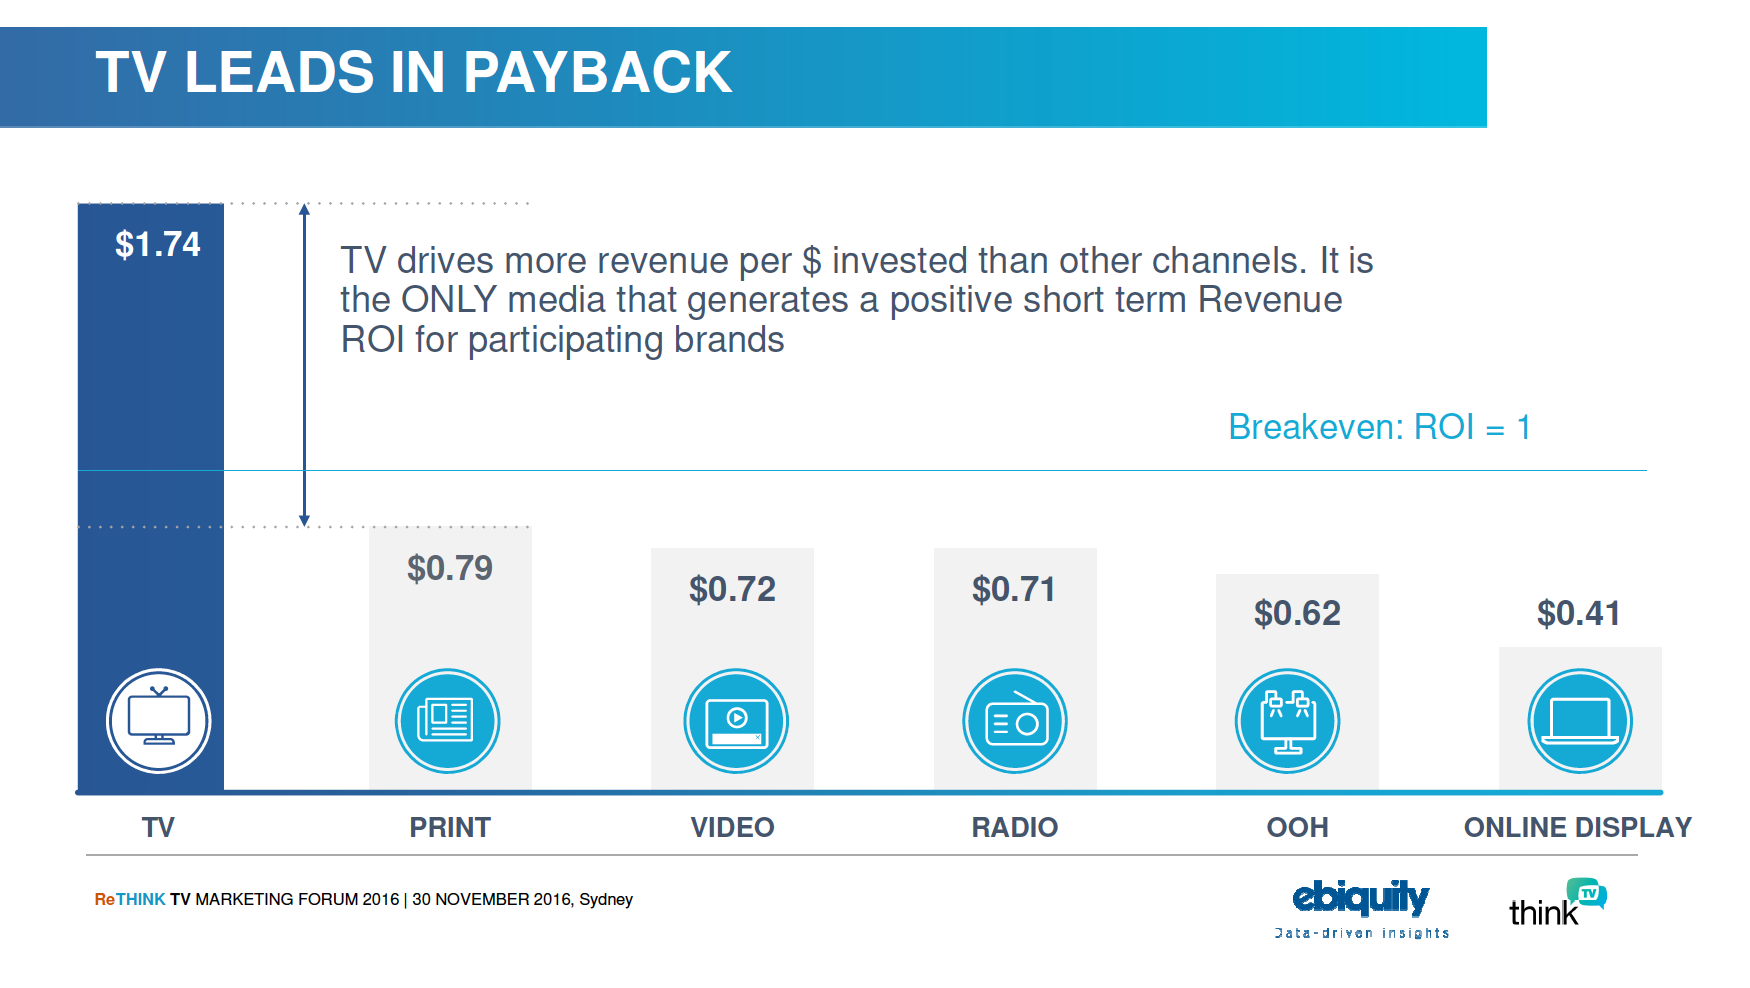 TV leads in payback - Payback Australia study